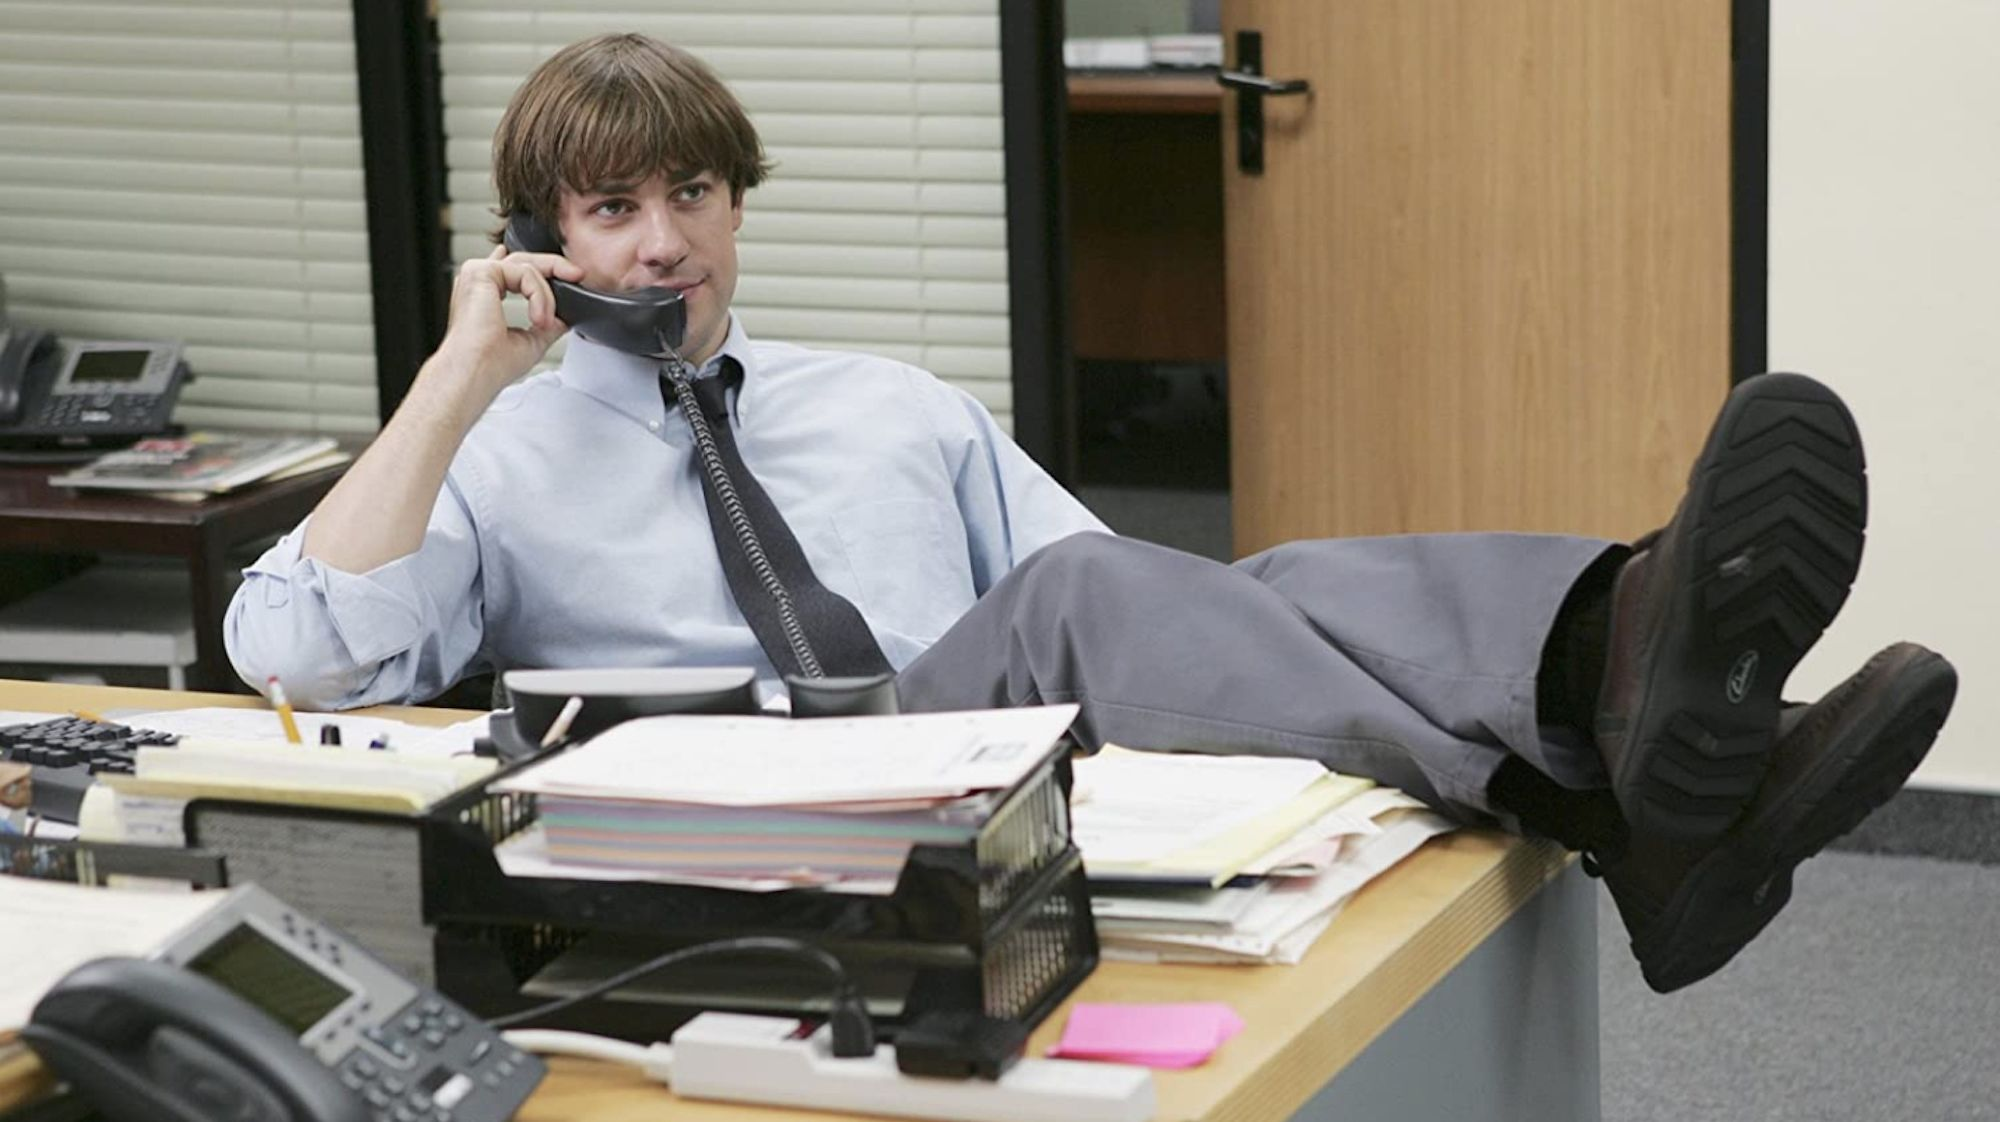 John Krasinski Wore a Wig That He Made Himself During Season 3 of The Office—Here's Why